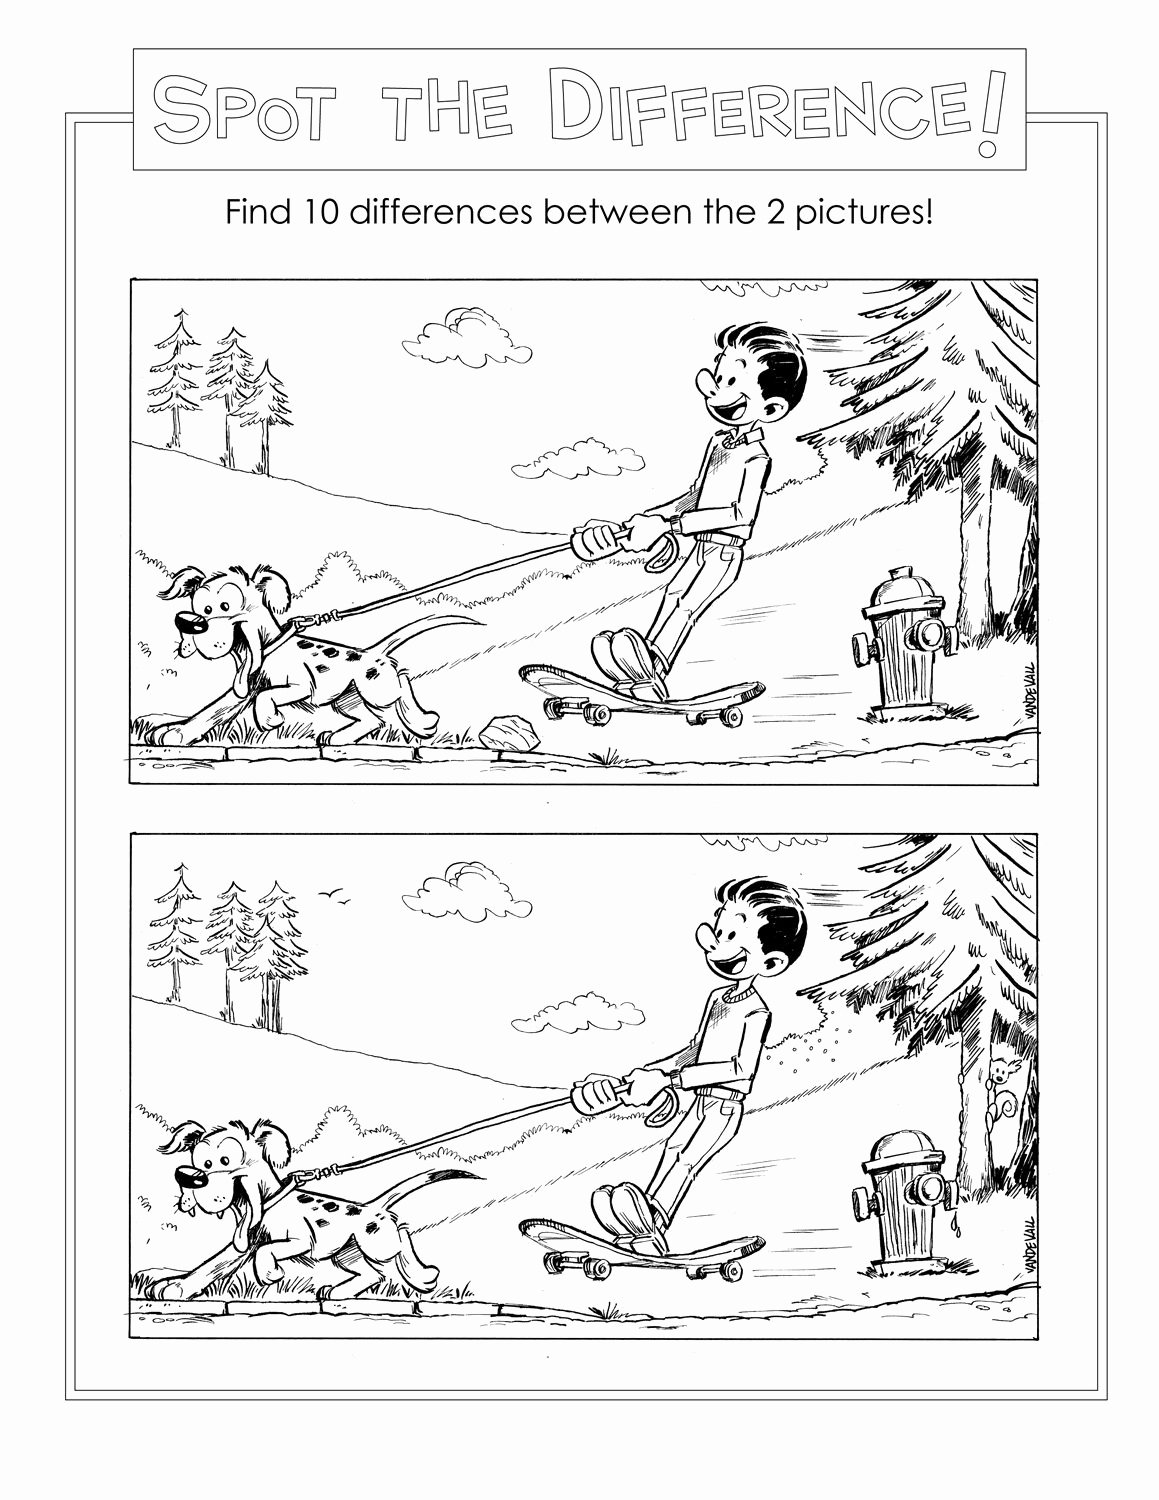 Spot the Difference Worksheets for Preschoolers Best Of Spot the Difference Worksheets